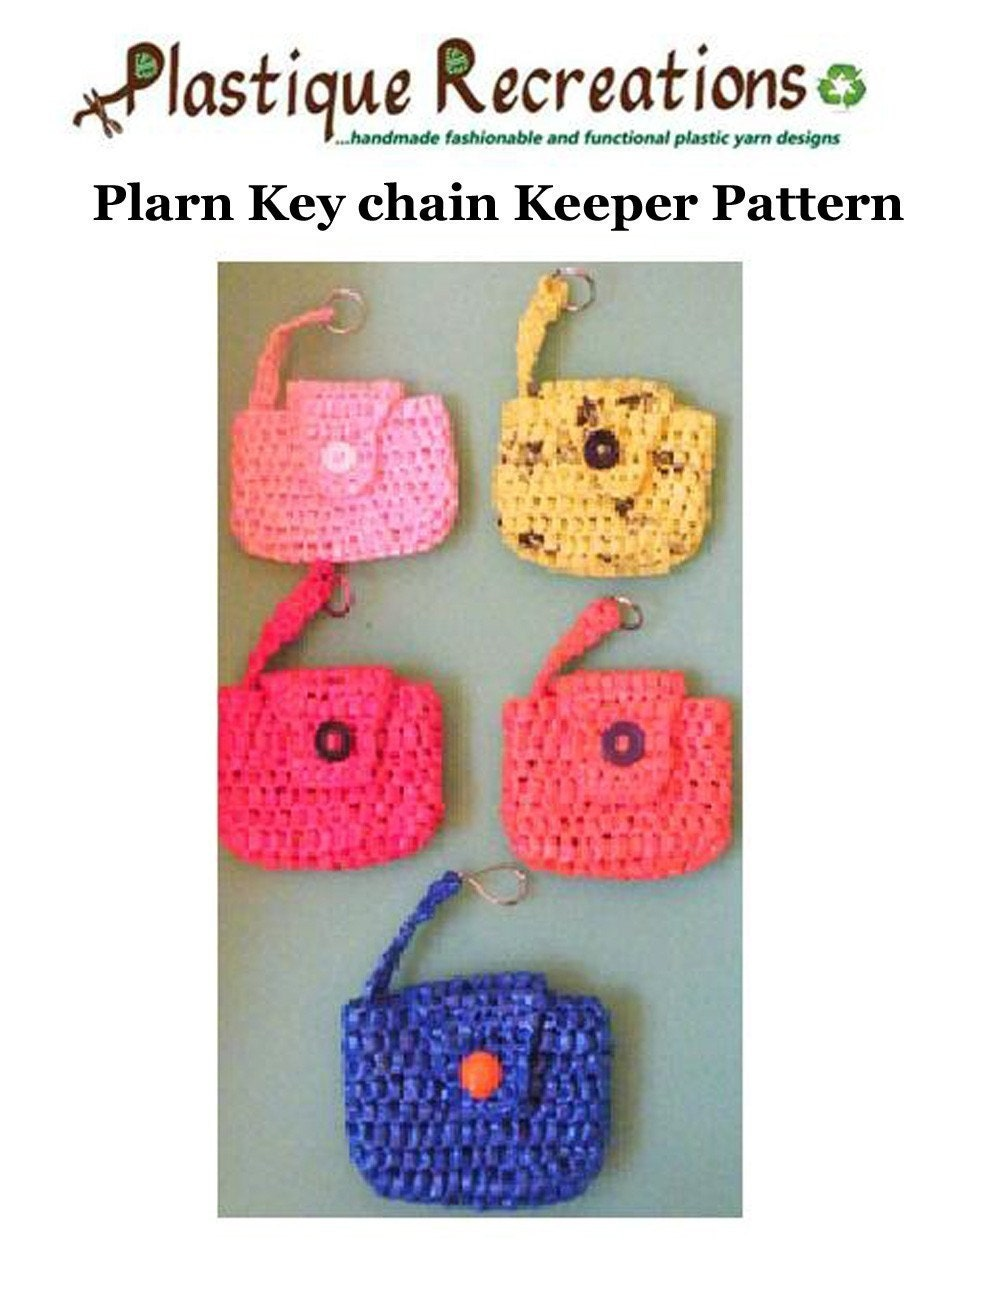 Crochet Purse Keychain Pattern : Crochet PDF Pattern Plarn Key chain Keeper by twooleydesigns